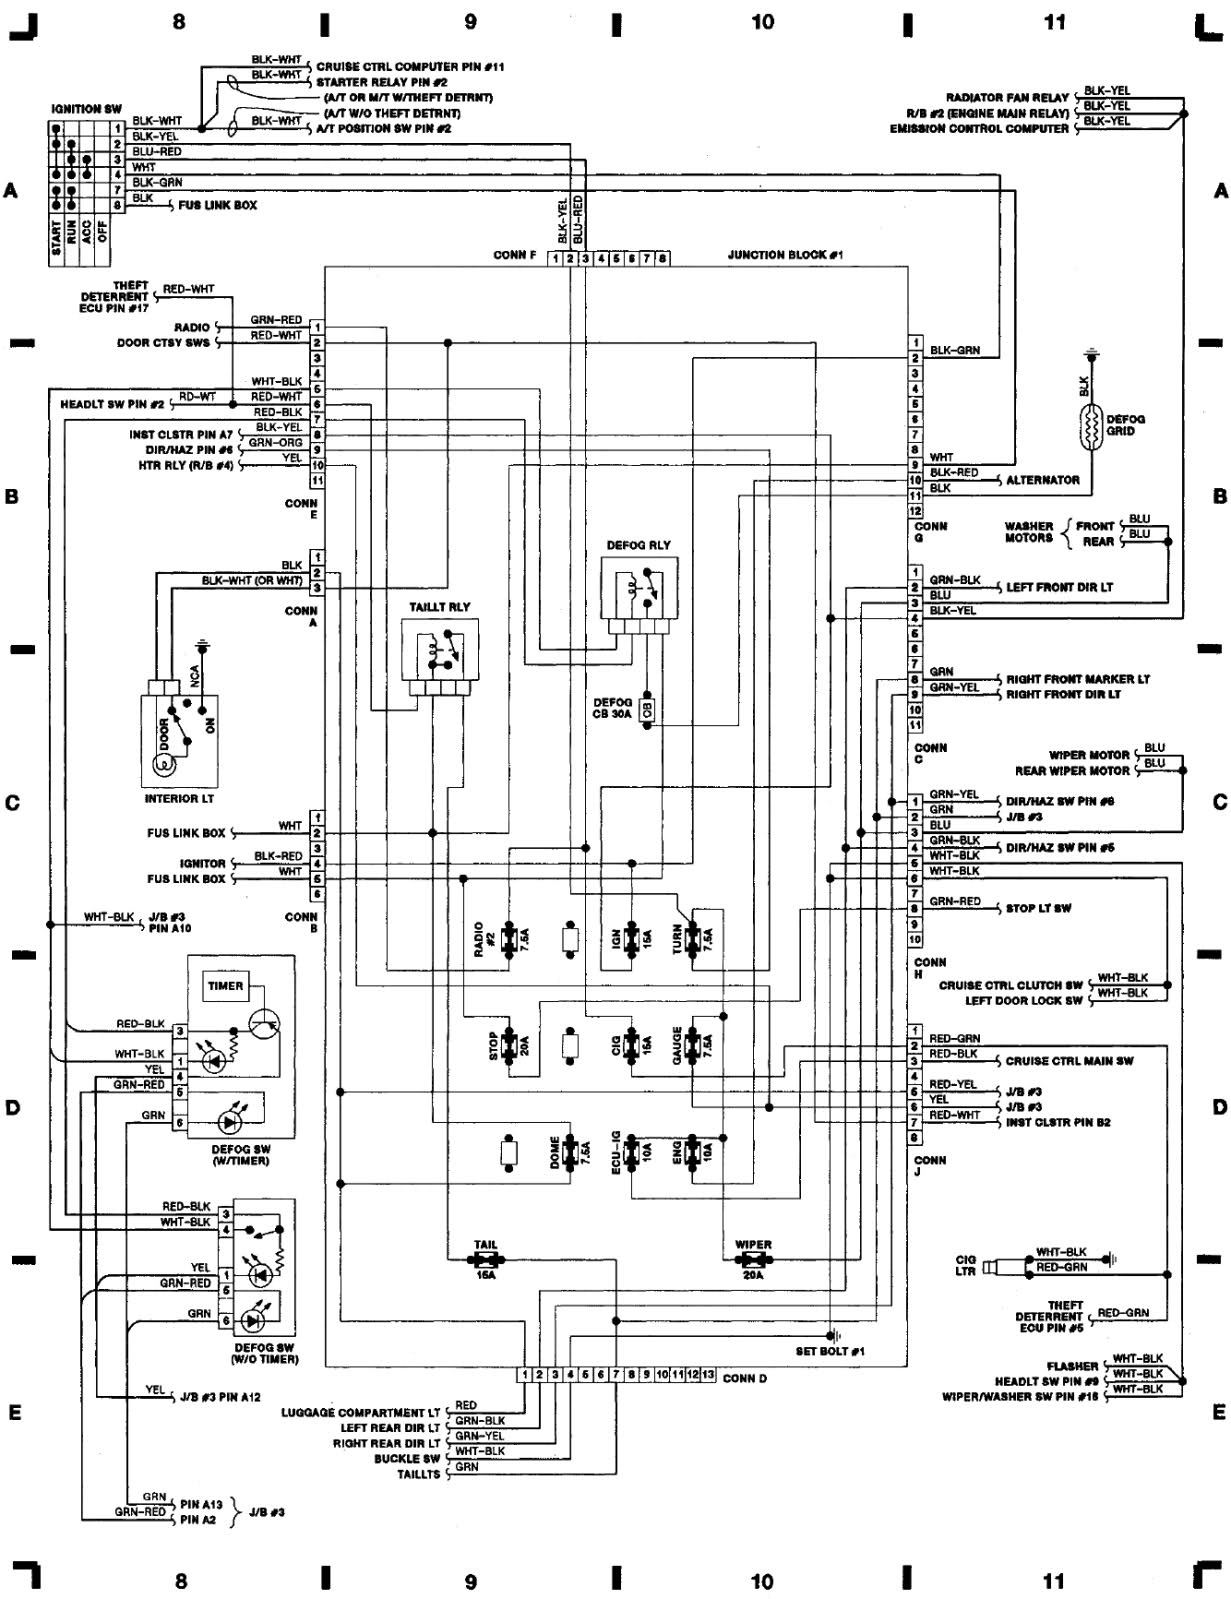 2000 toyota celica fuse box diagram gUMBNVL 2000 toyota celica fuse box diagram image details 2003 toyota celica fuse box location at gsmx.co